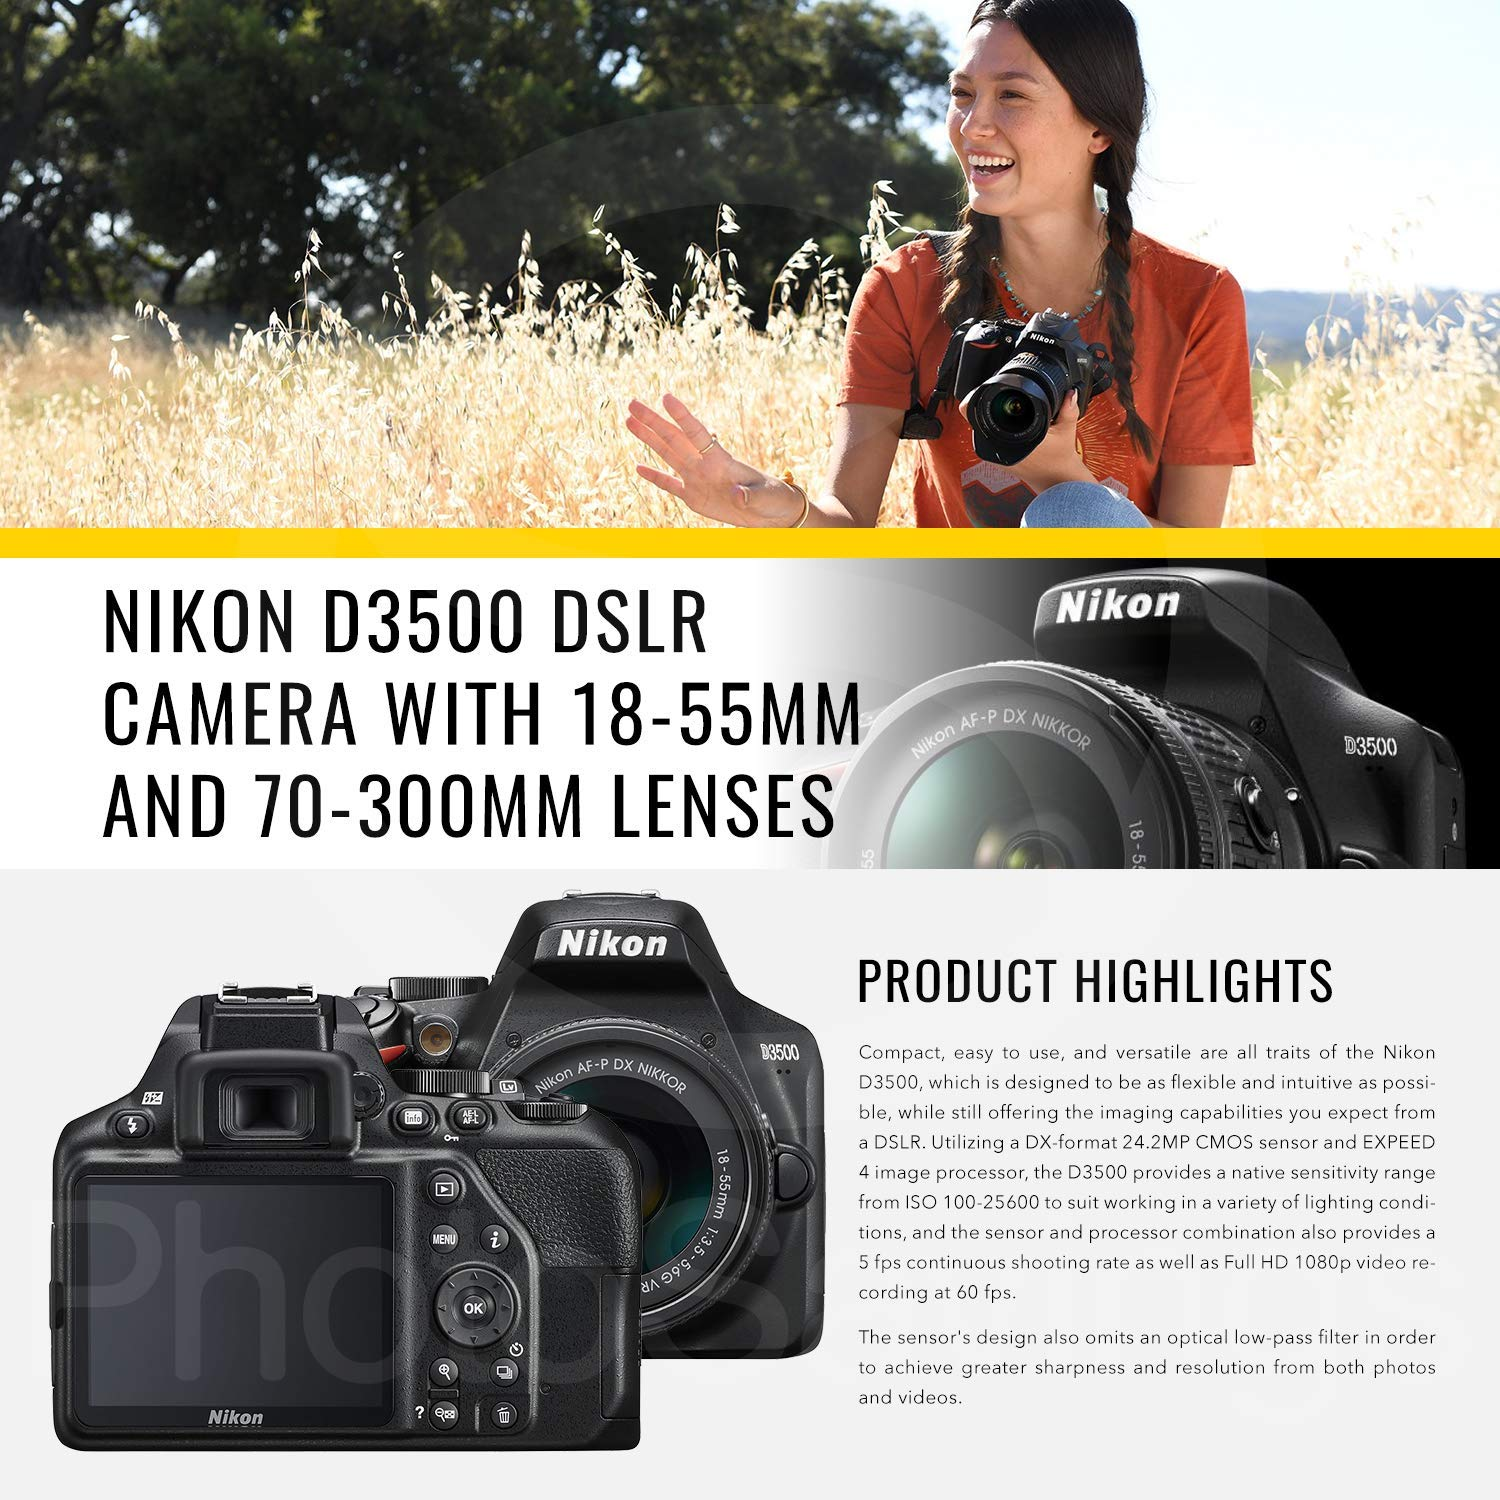 Nikon D3500 DSLR Camera with 18-55mm and 70-300mm Lenses + 32GB Card, Tripod, Flash, and Bundle by Photo Savings (Image #2)